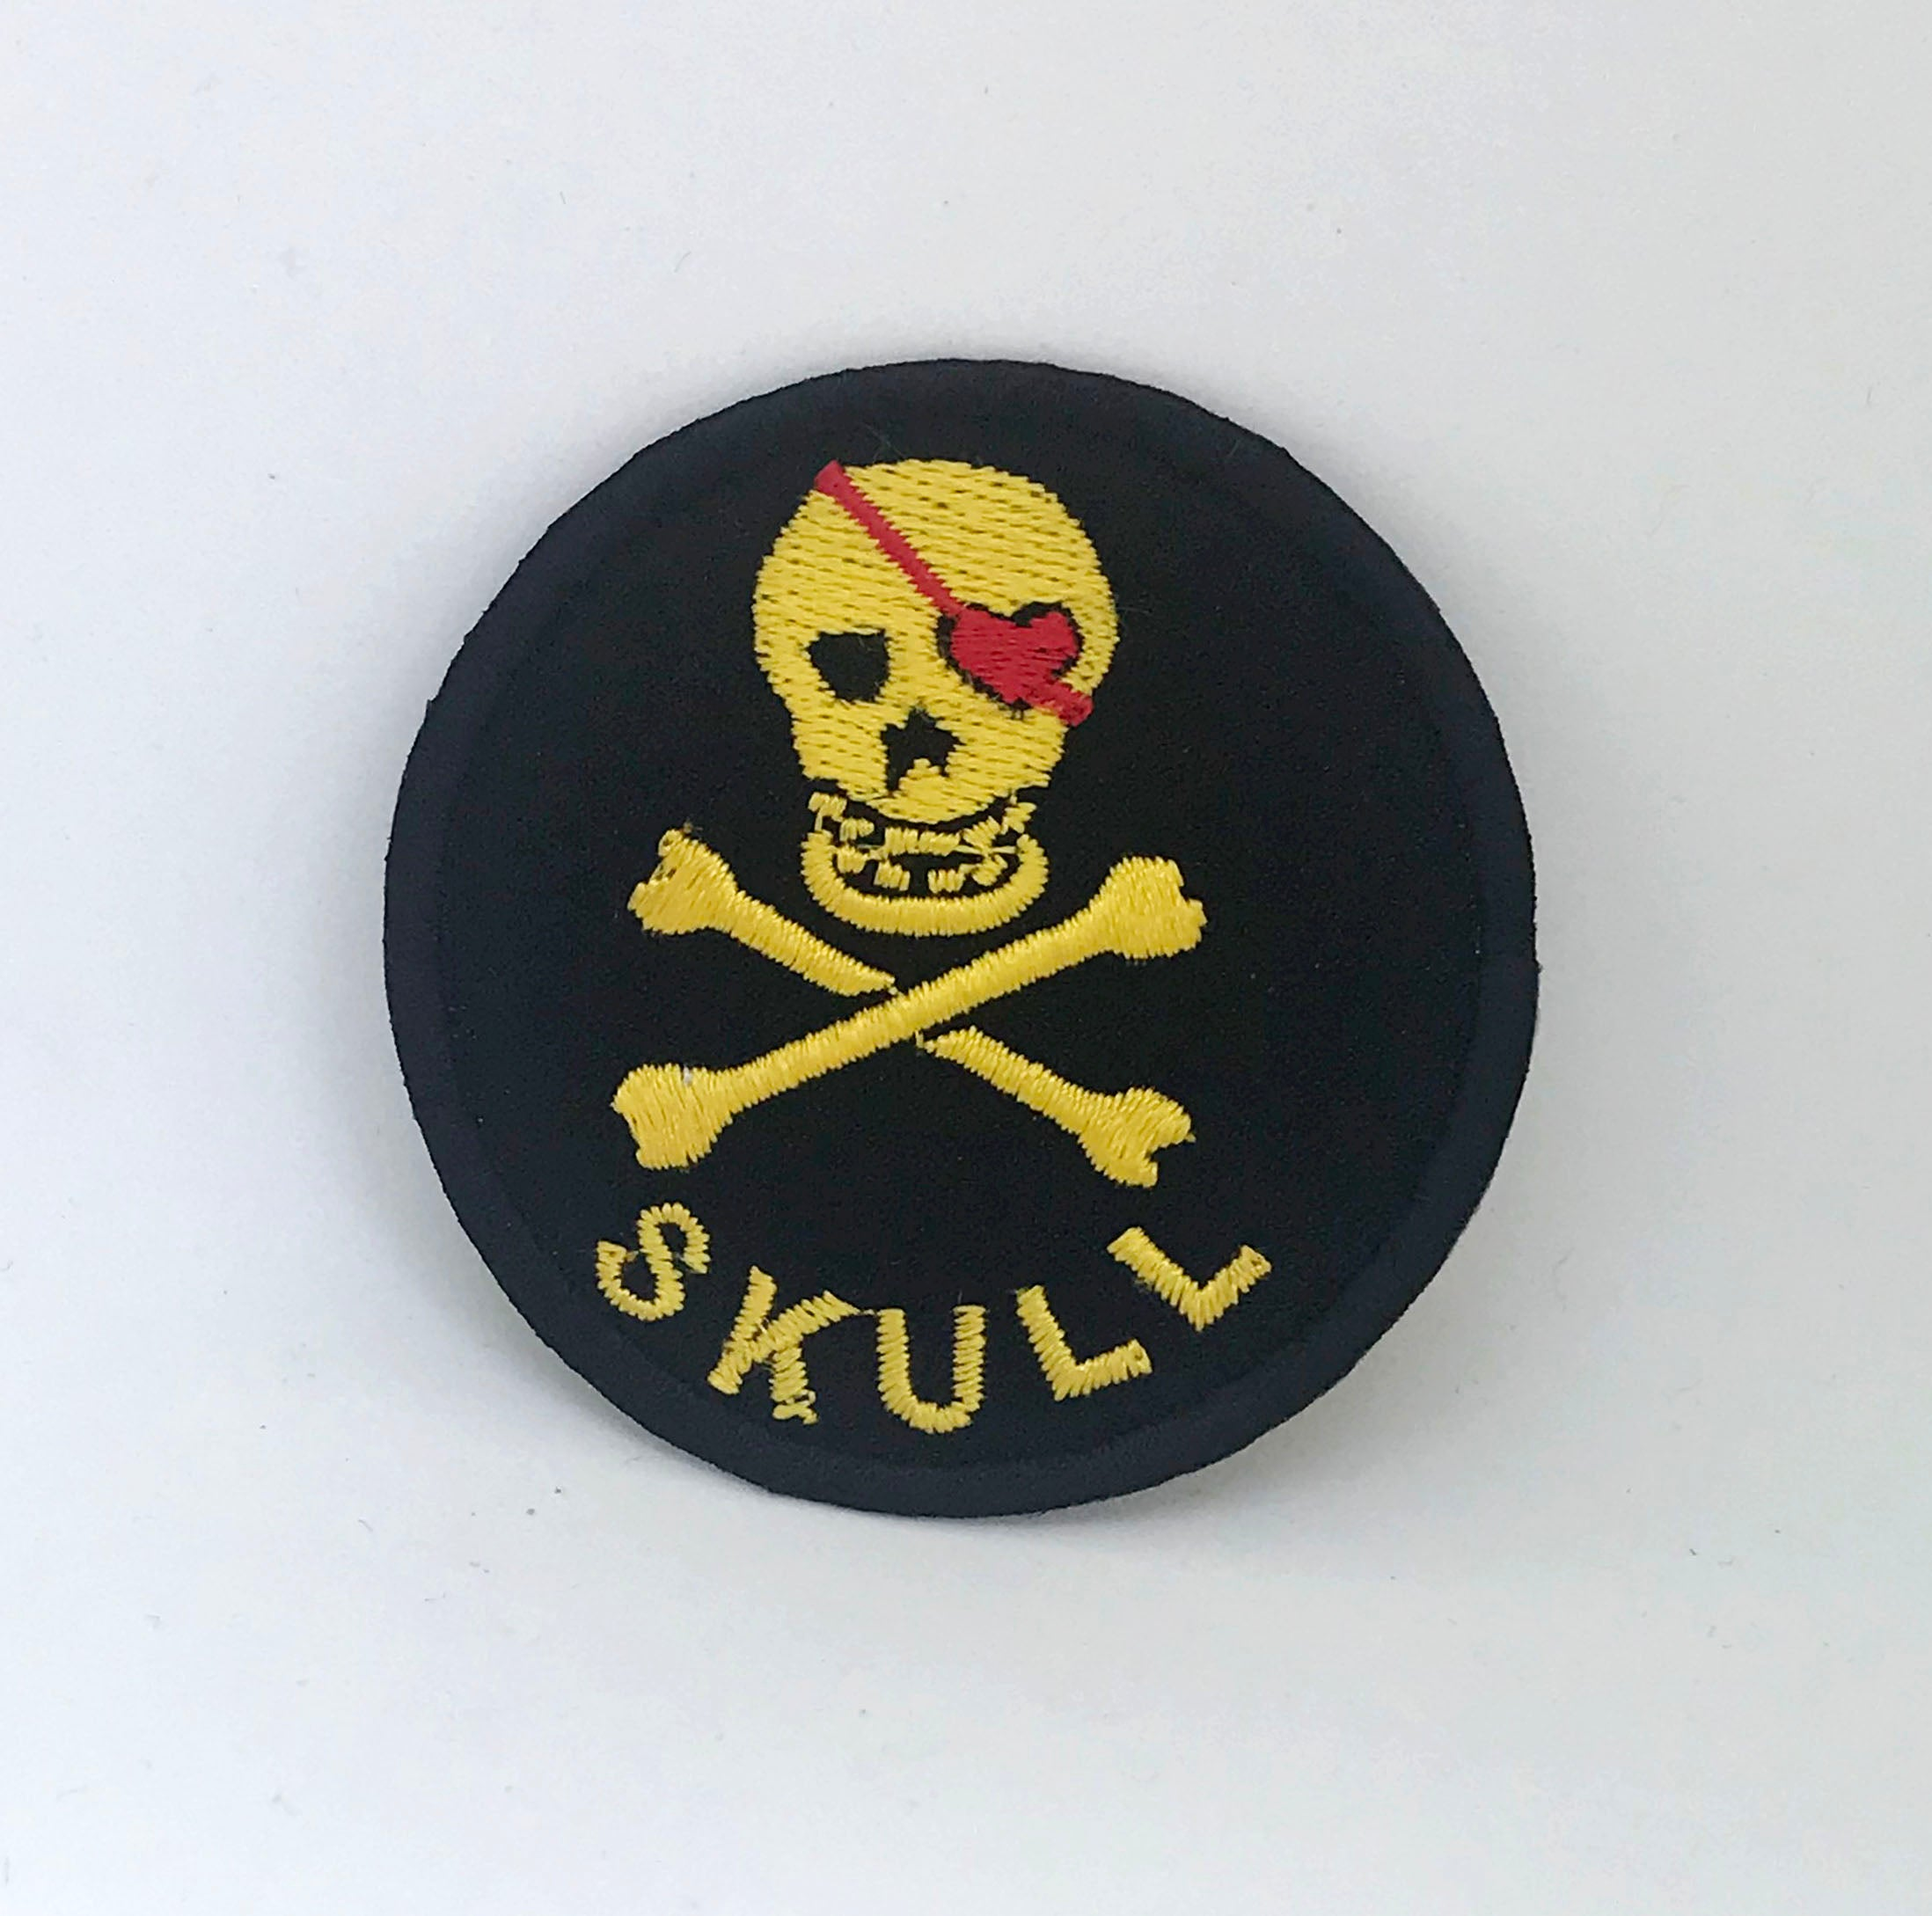 Skull With Crossbones Round Iron on Sew on Embroidered Patch white YELLOW